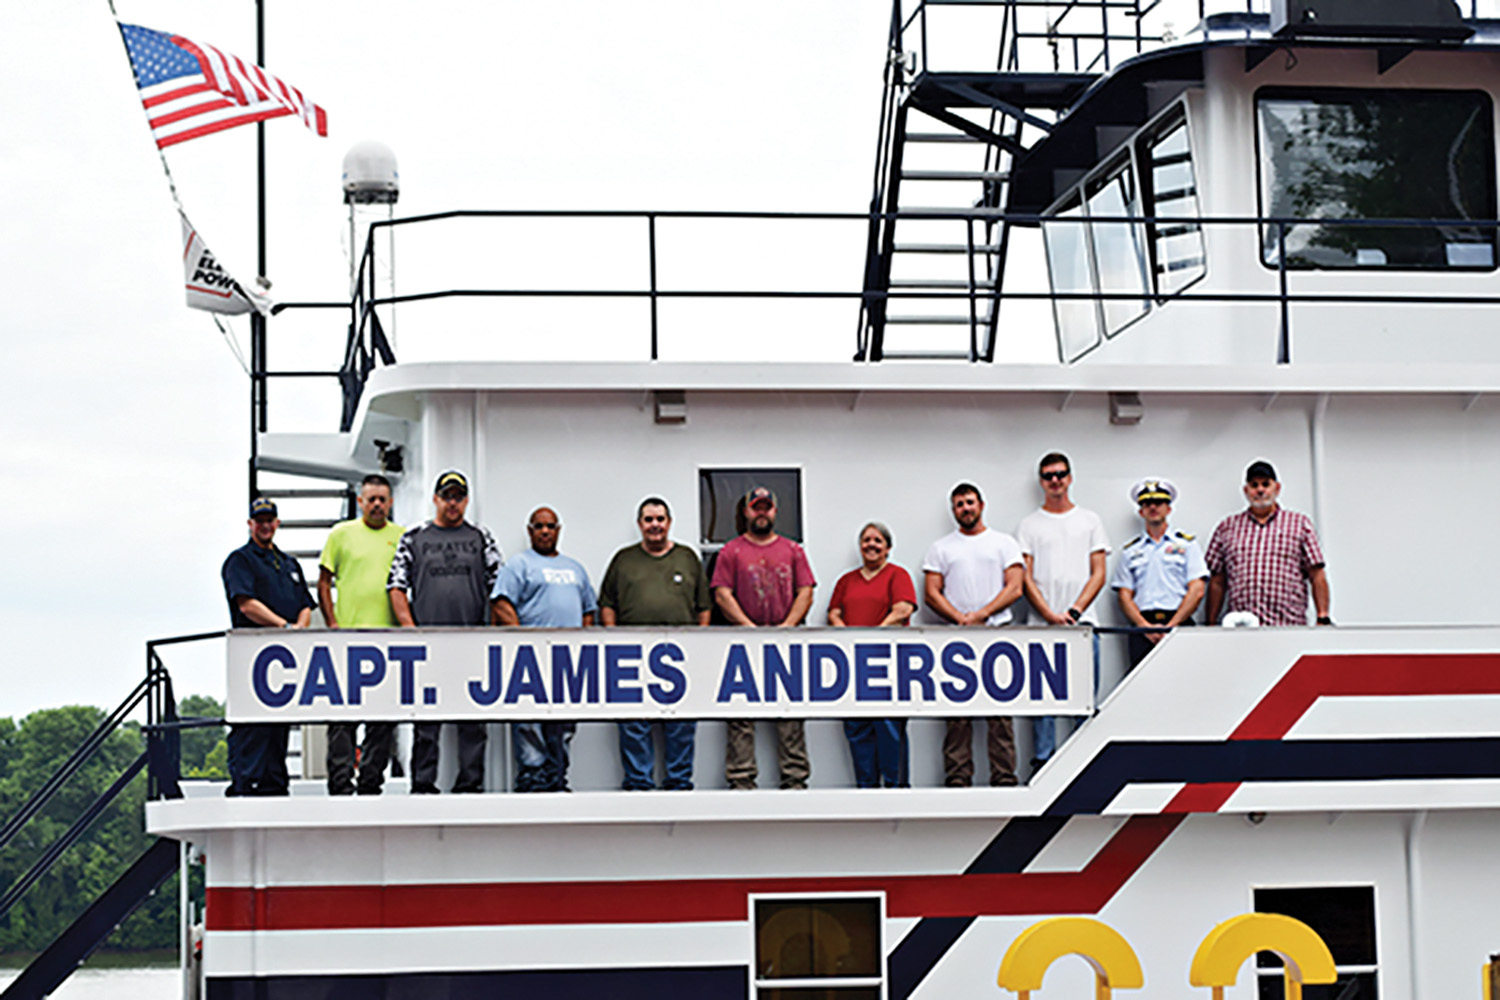 The crew of the mv. Capt. James Anderson celebrates receiving a Certificate of Inspection (COI) from the U.S. Coast Guard. From left to right is Chris Blank with the Coast Guard, Dale Nedrow, Danny Marr, Mike Rogers, Bill Null, Matt Rieger, Juanita Landes, Jonathan Jordan, James Northup, Coast Guard Cmdr. Paul Mangini and Troy Akers. (Photo by Dee Harbrecht)